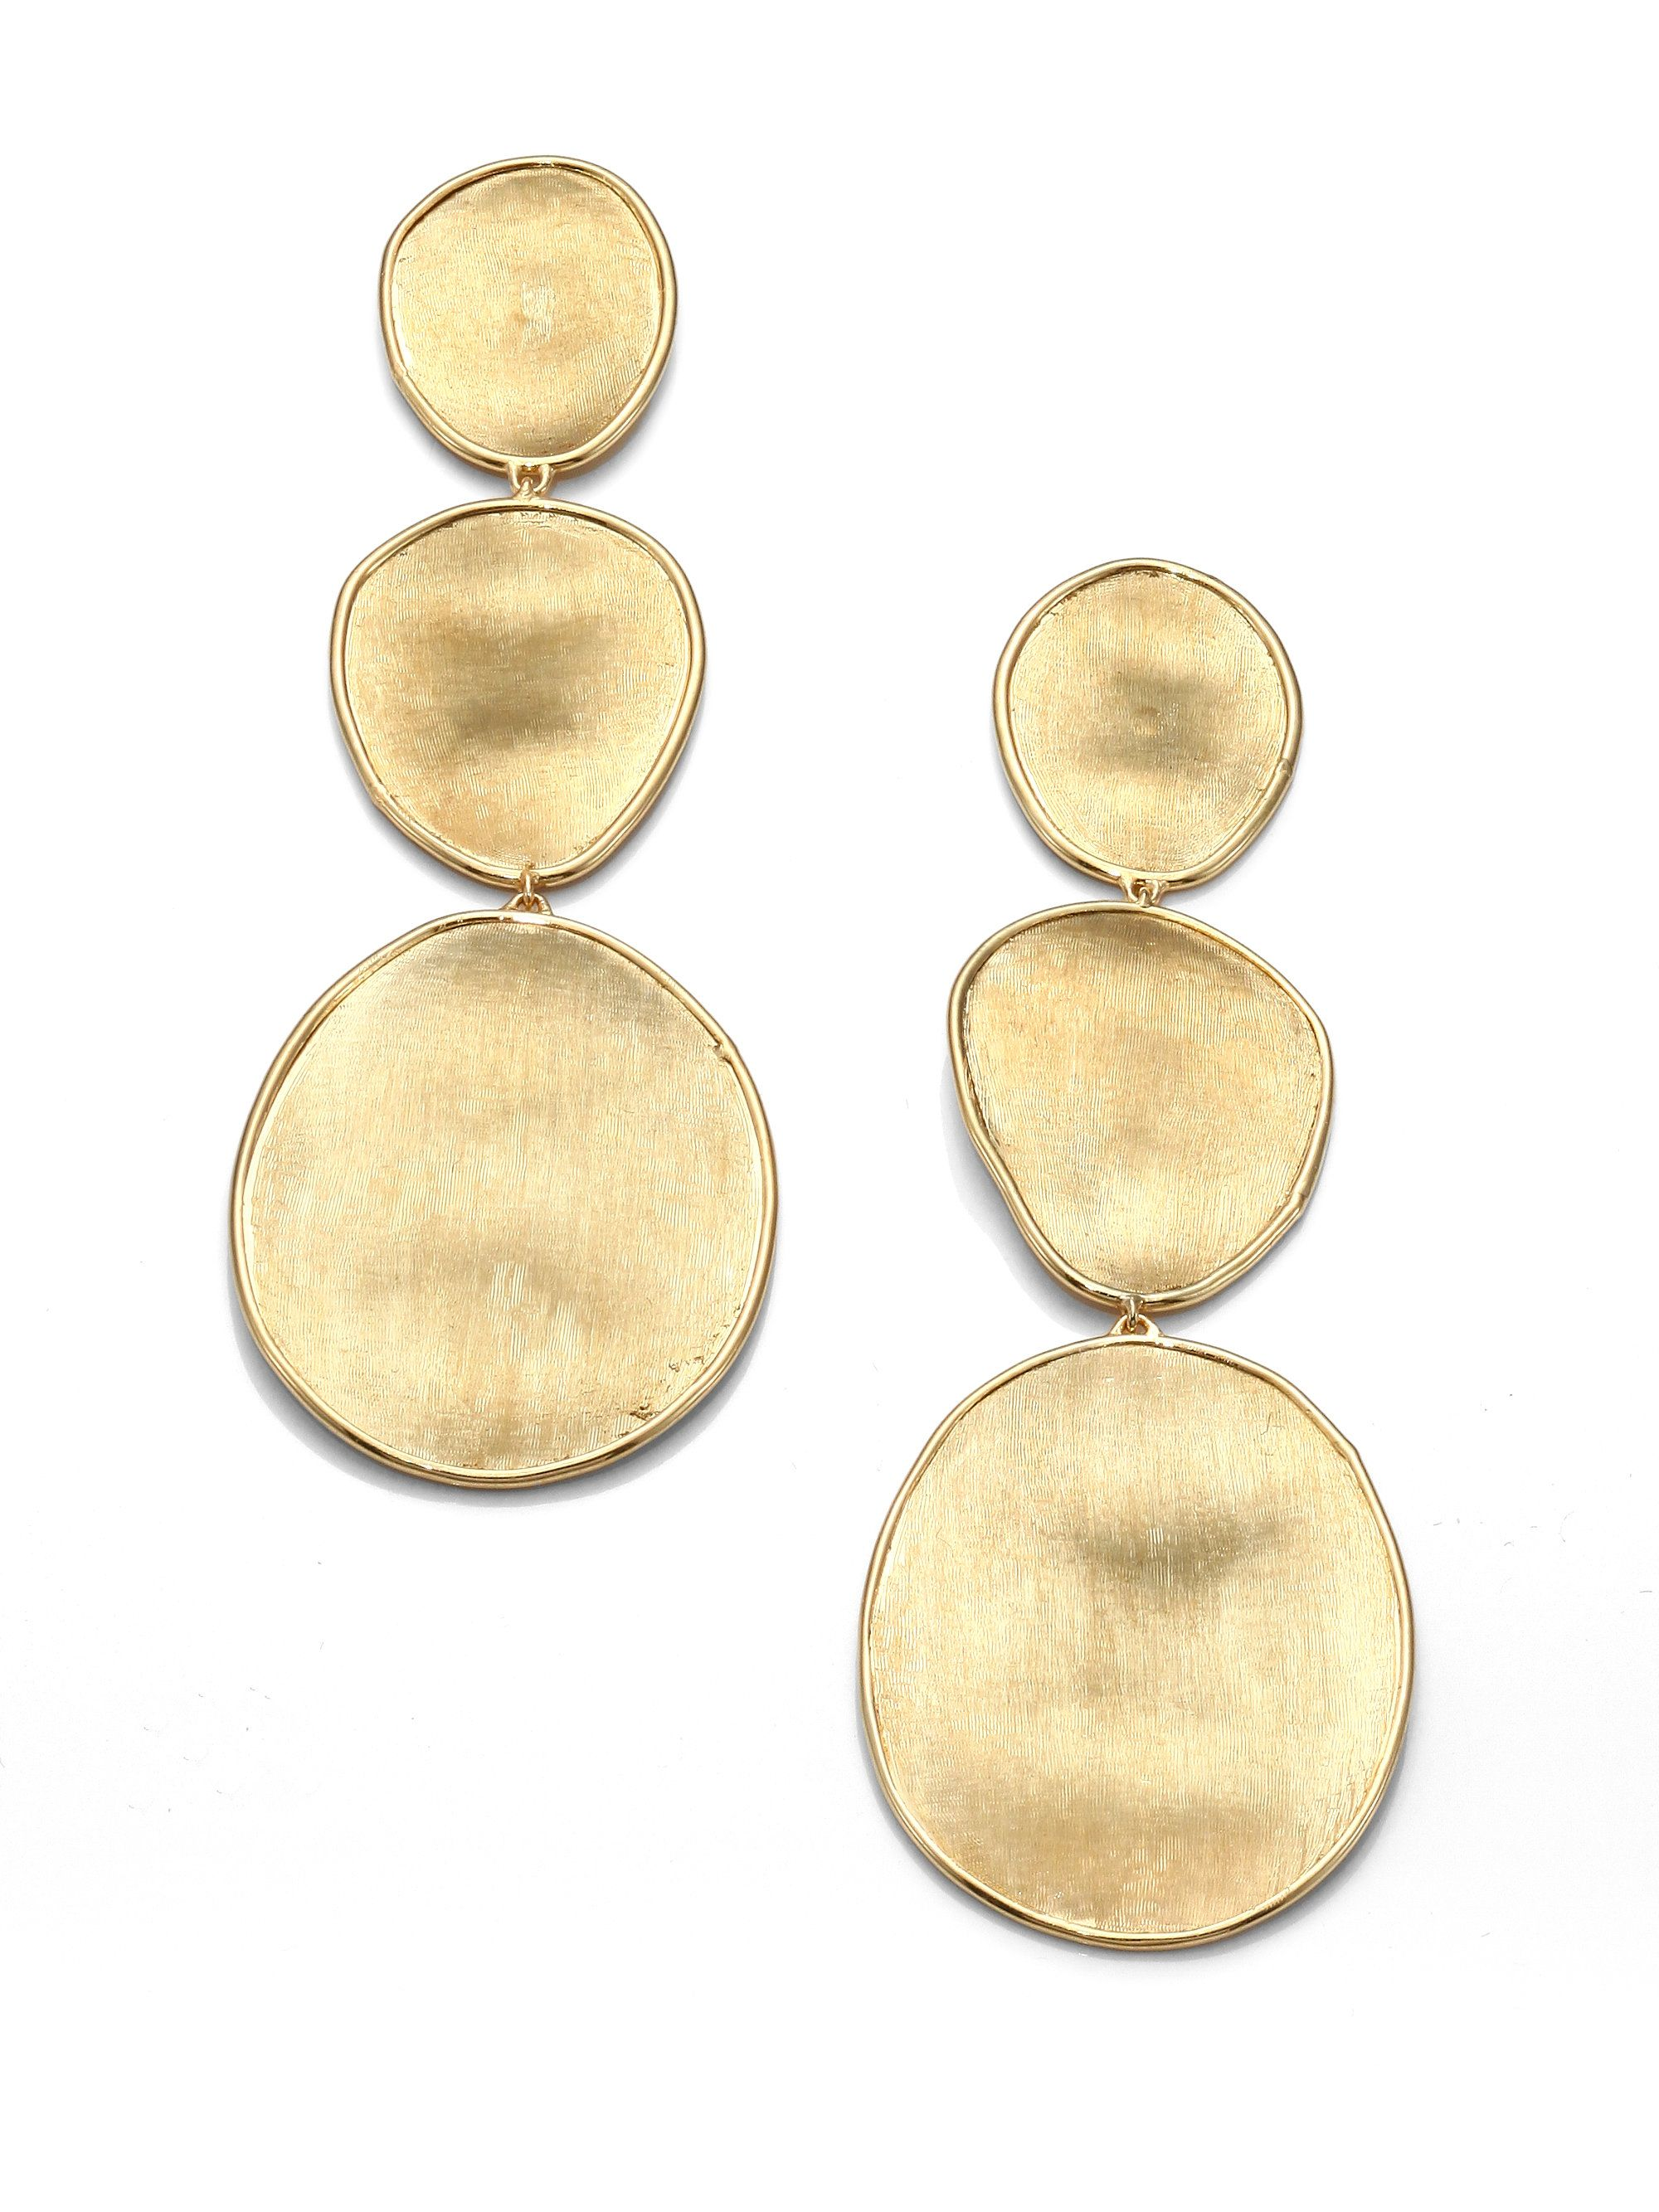 earrings george tag archives press bicego marco